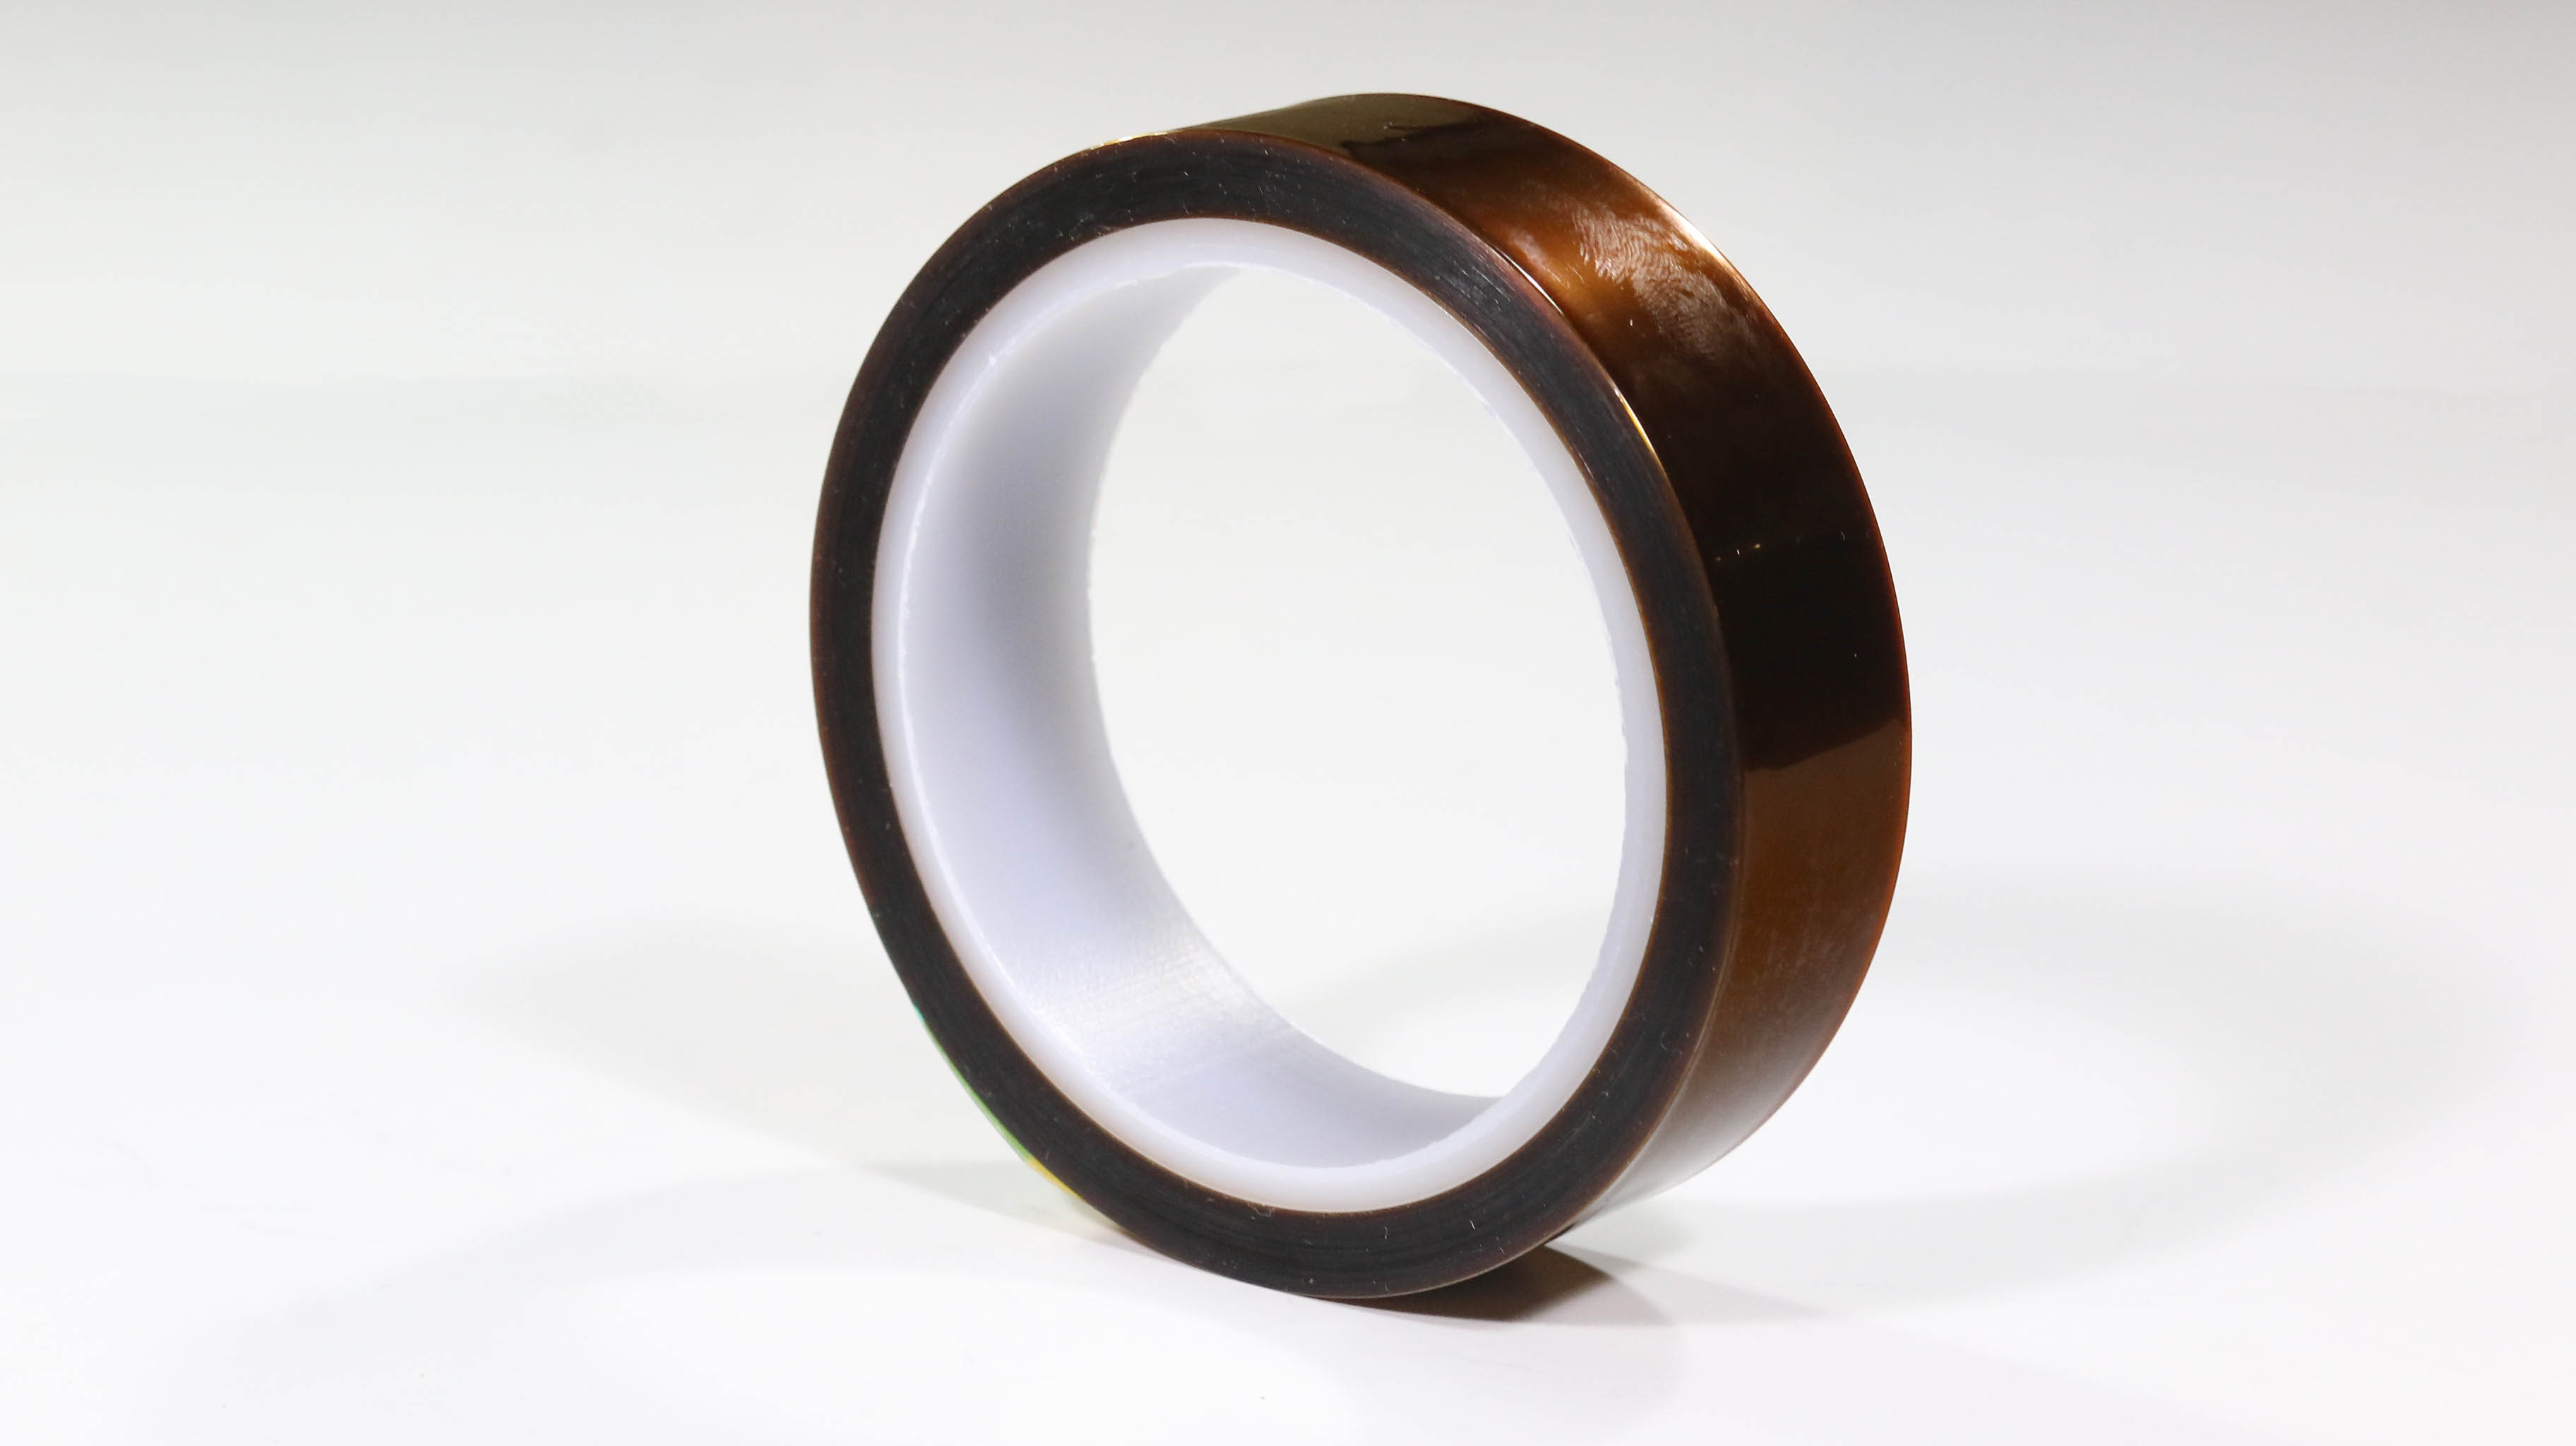 7.125 x 36 Yards Kapton 18-1S Polyimide Tape with Silicone Adhesive